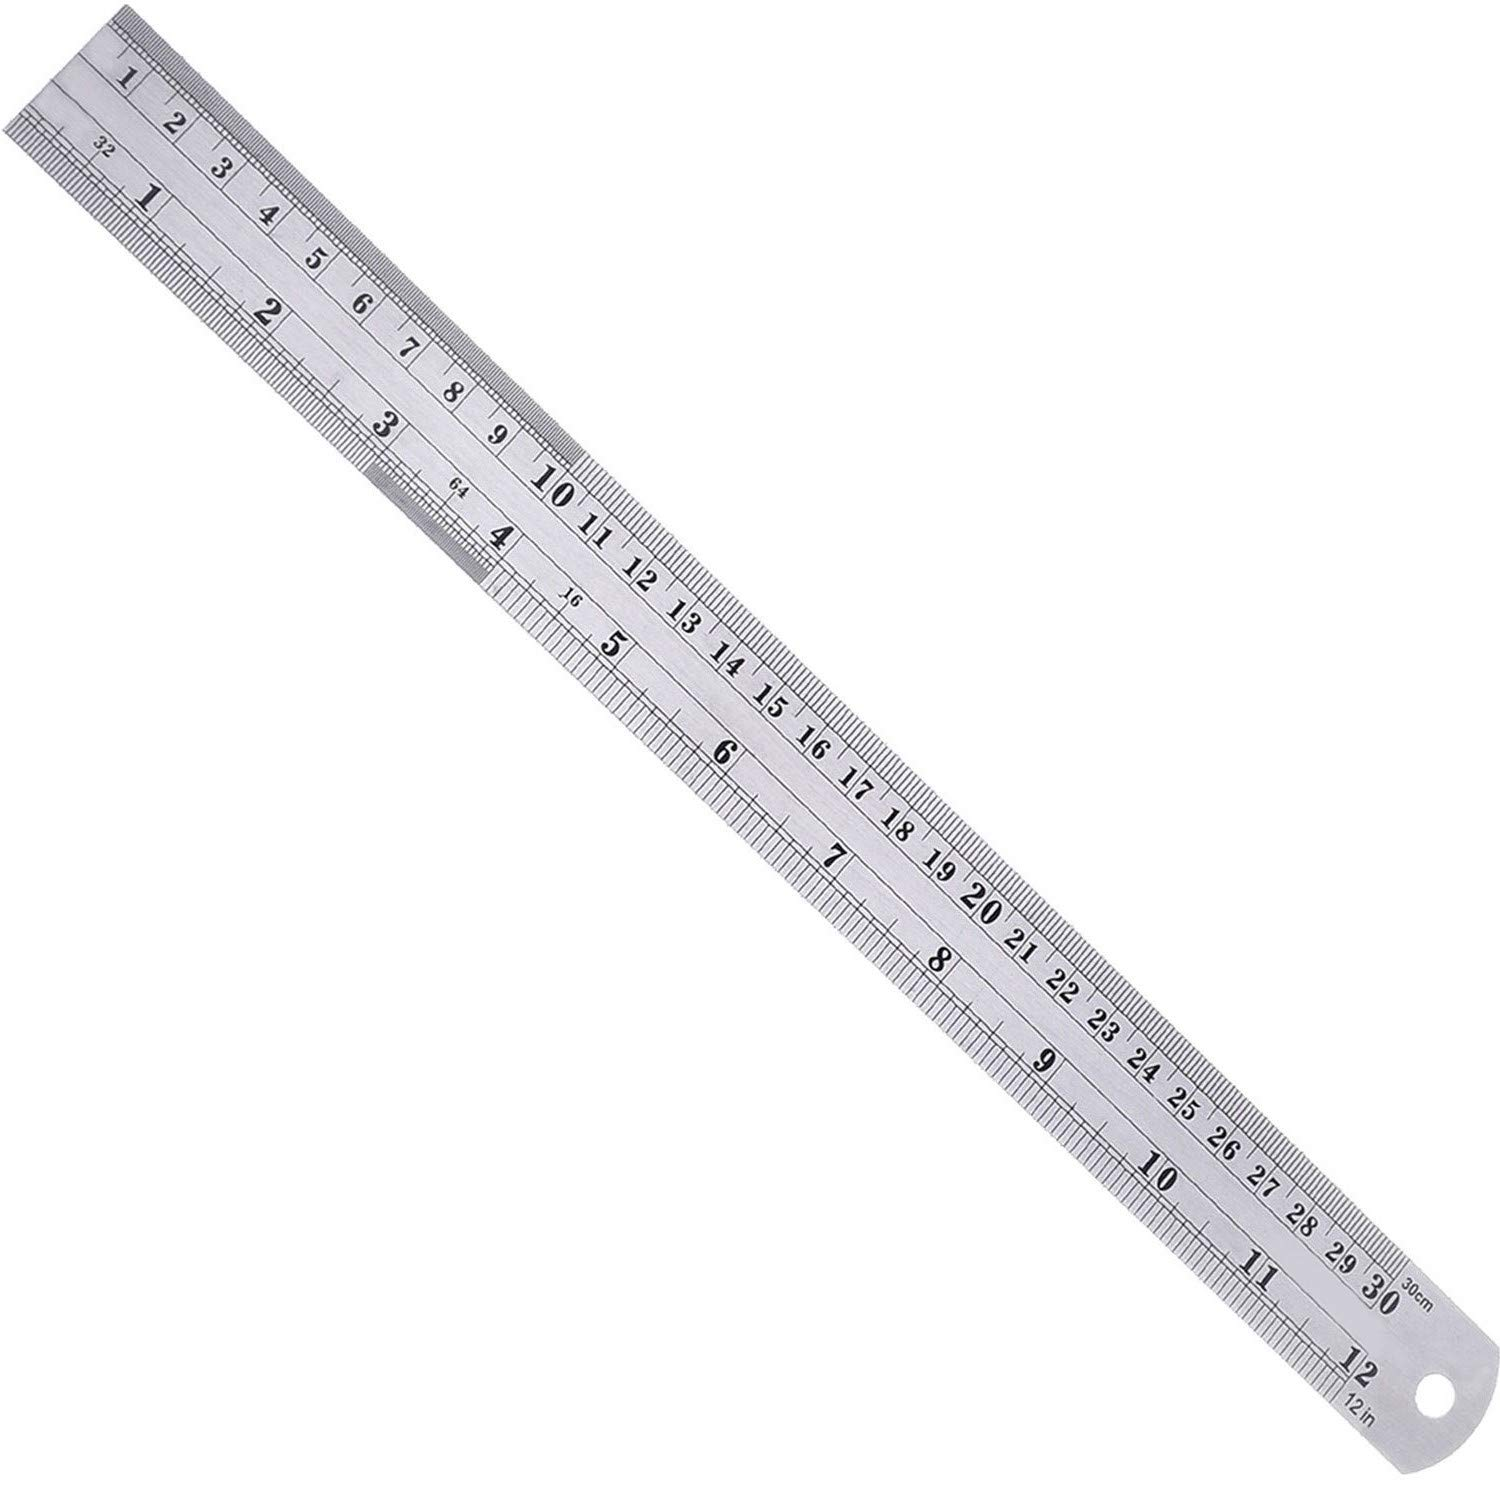 Harden Stainless Steel Ruler with Conversion Table (60-Inch)